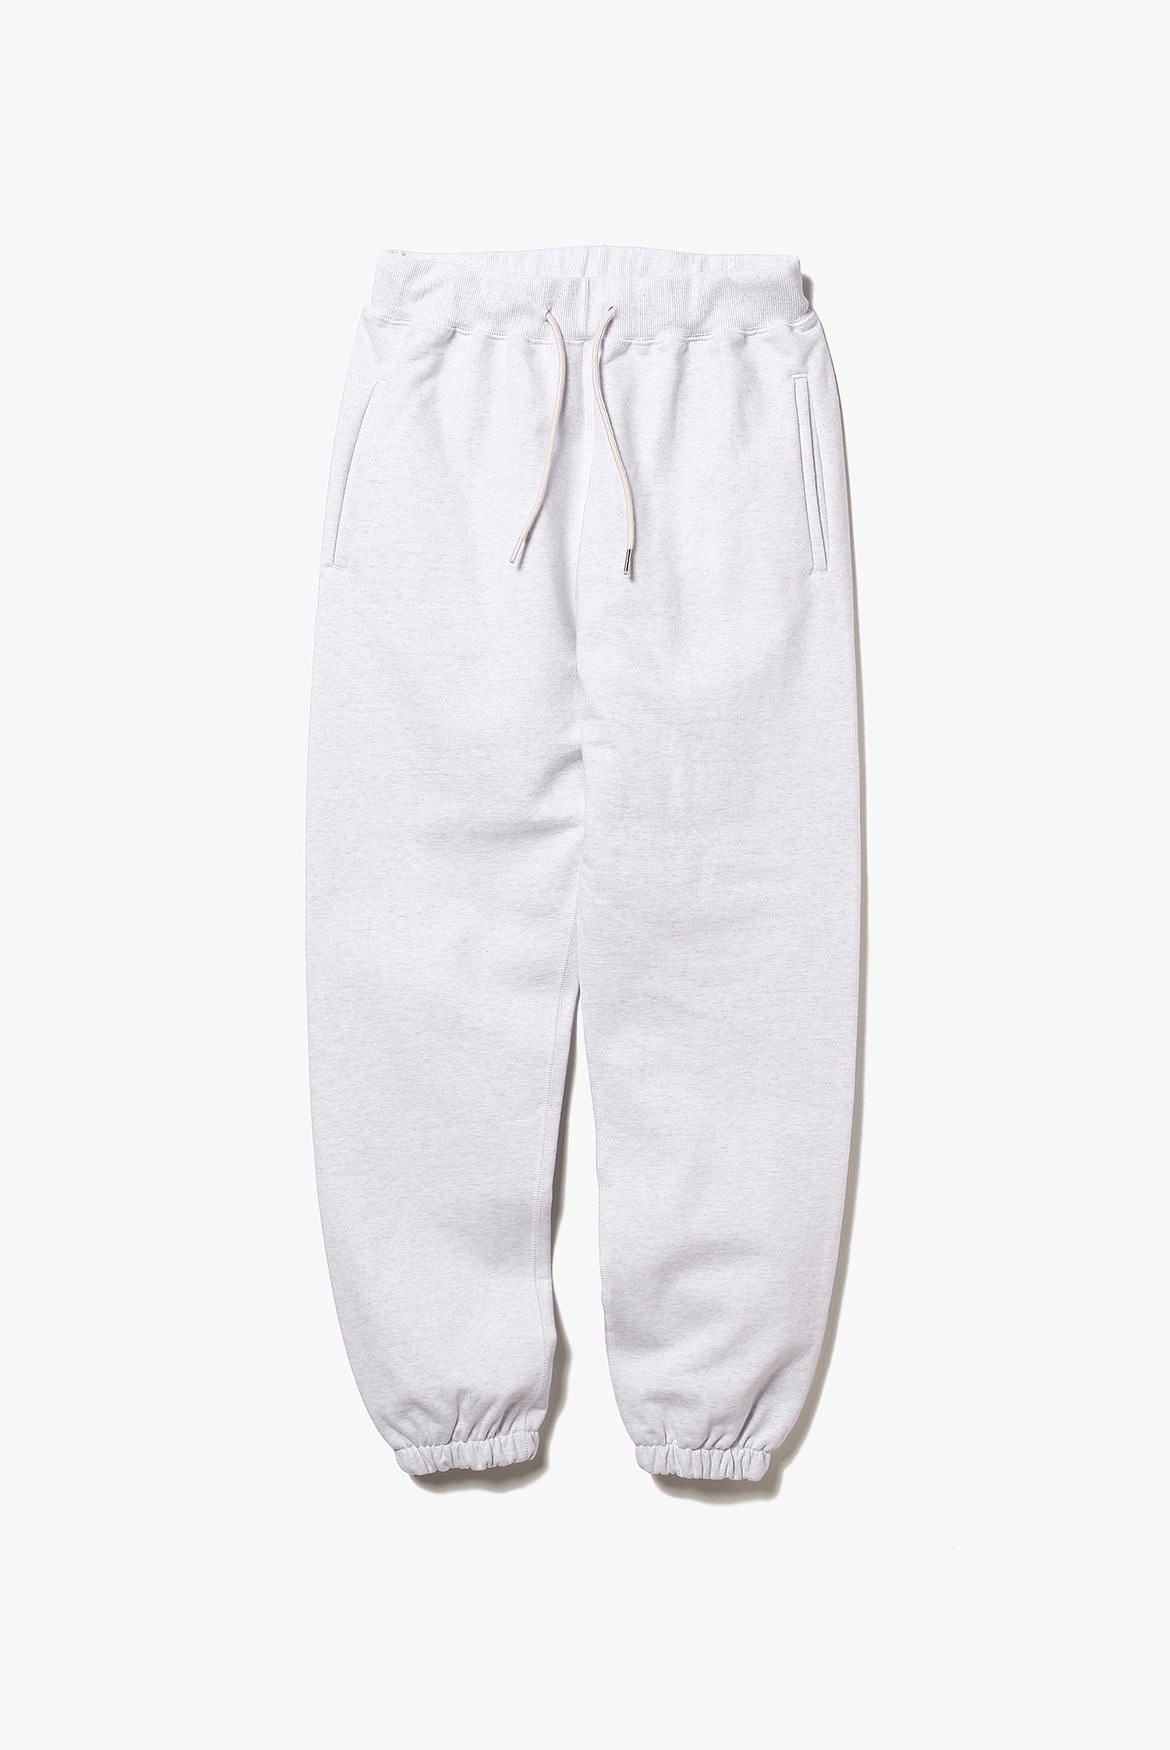 Classic Sweat Pants [White Grey]